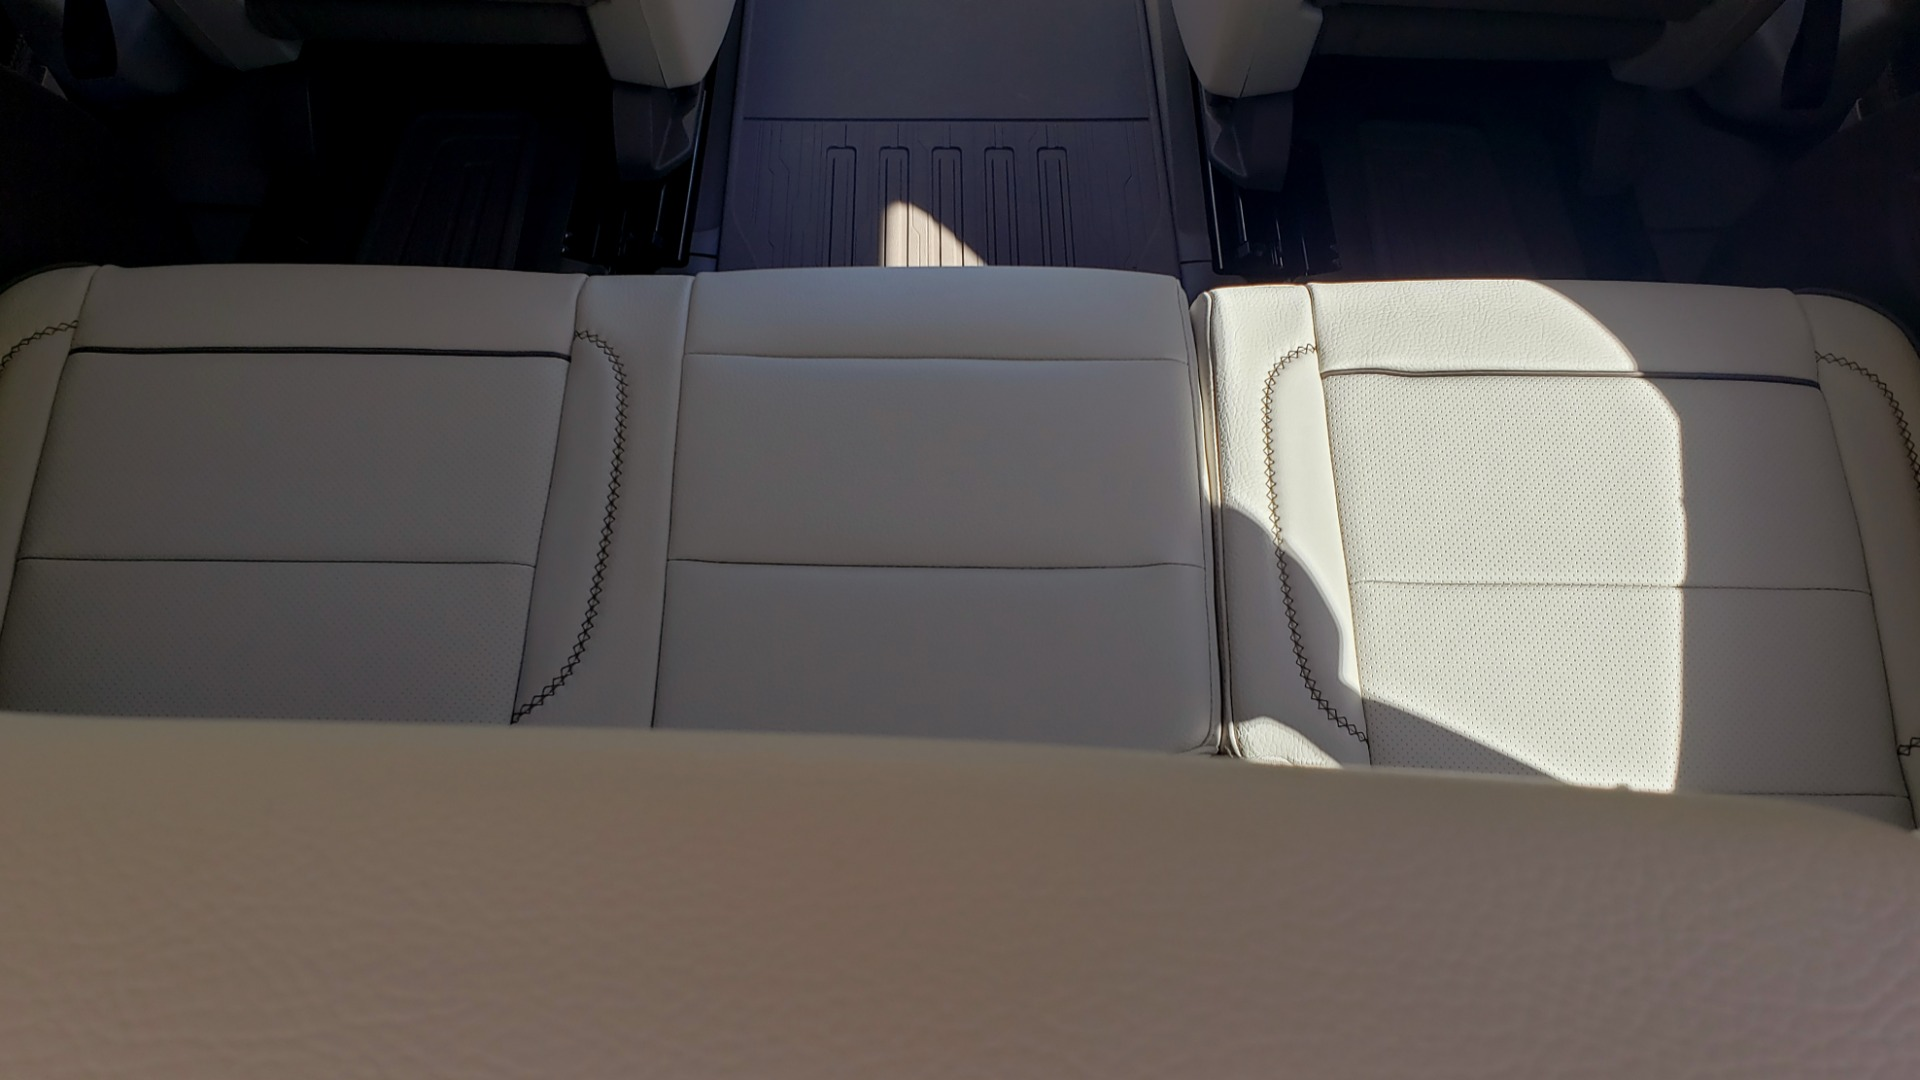 Used 2021 GMC YUKON DENALI PREM / 4WD / NAV / TECH / TRAILER / SECURITY / SUNROOF for sale Sold at Formula Imports in Charlotte NC 28227 29